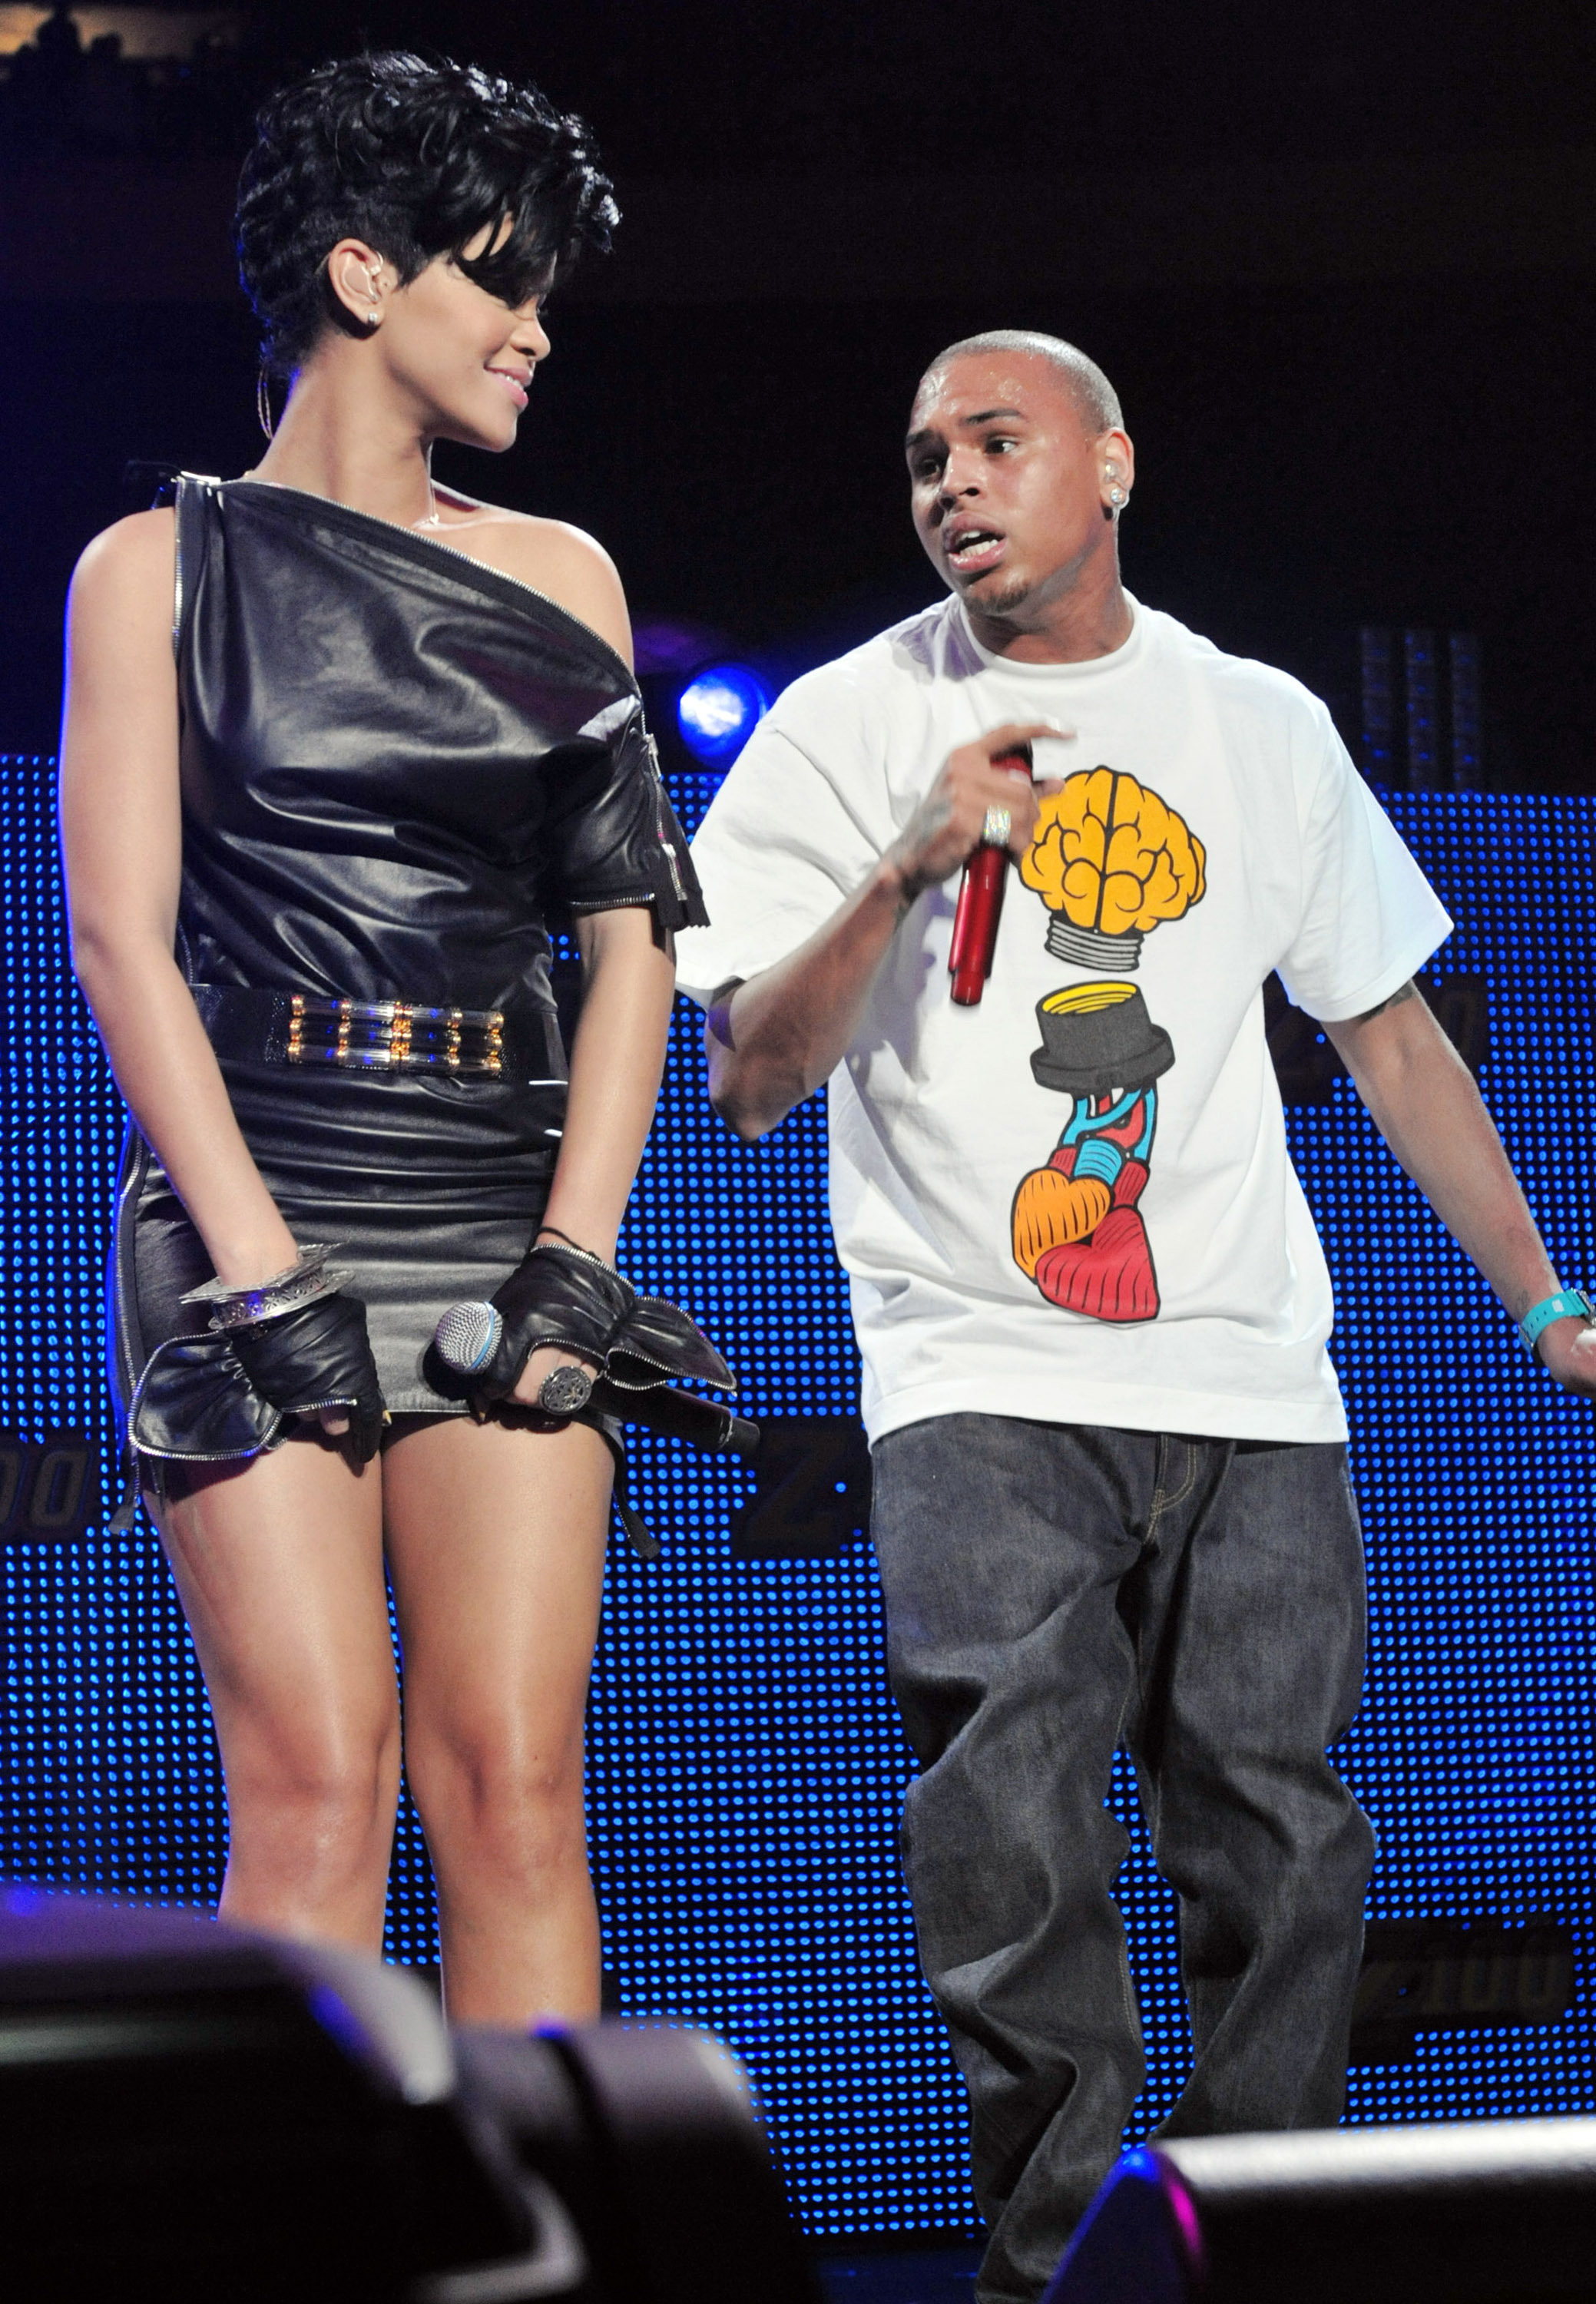 chris brown and rihanna images. Chris Brown and Rihanna Live